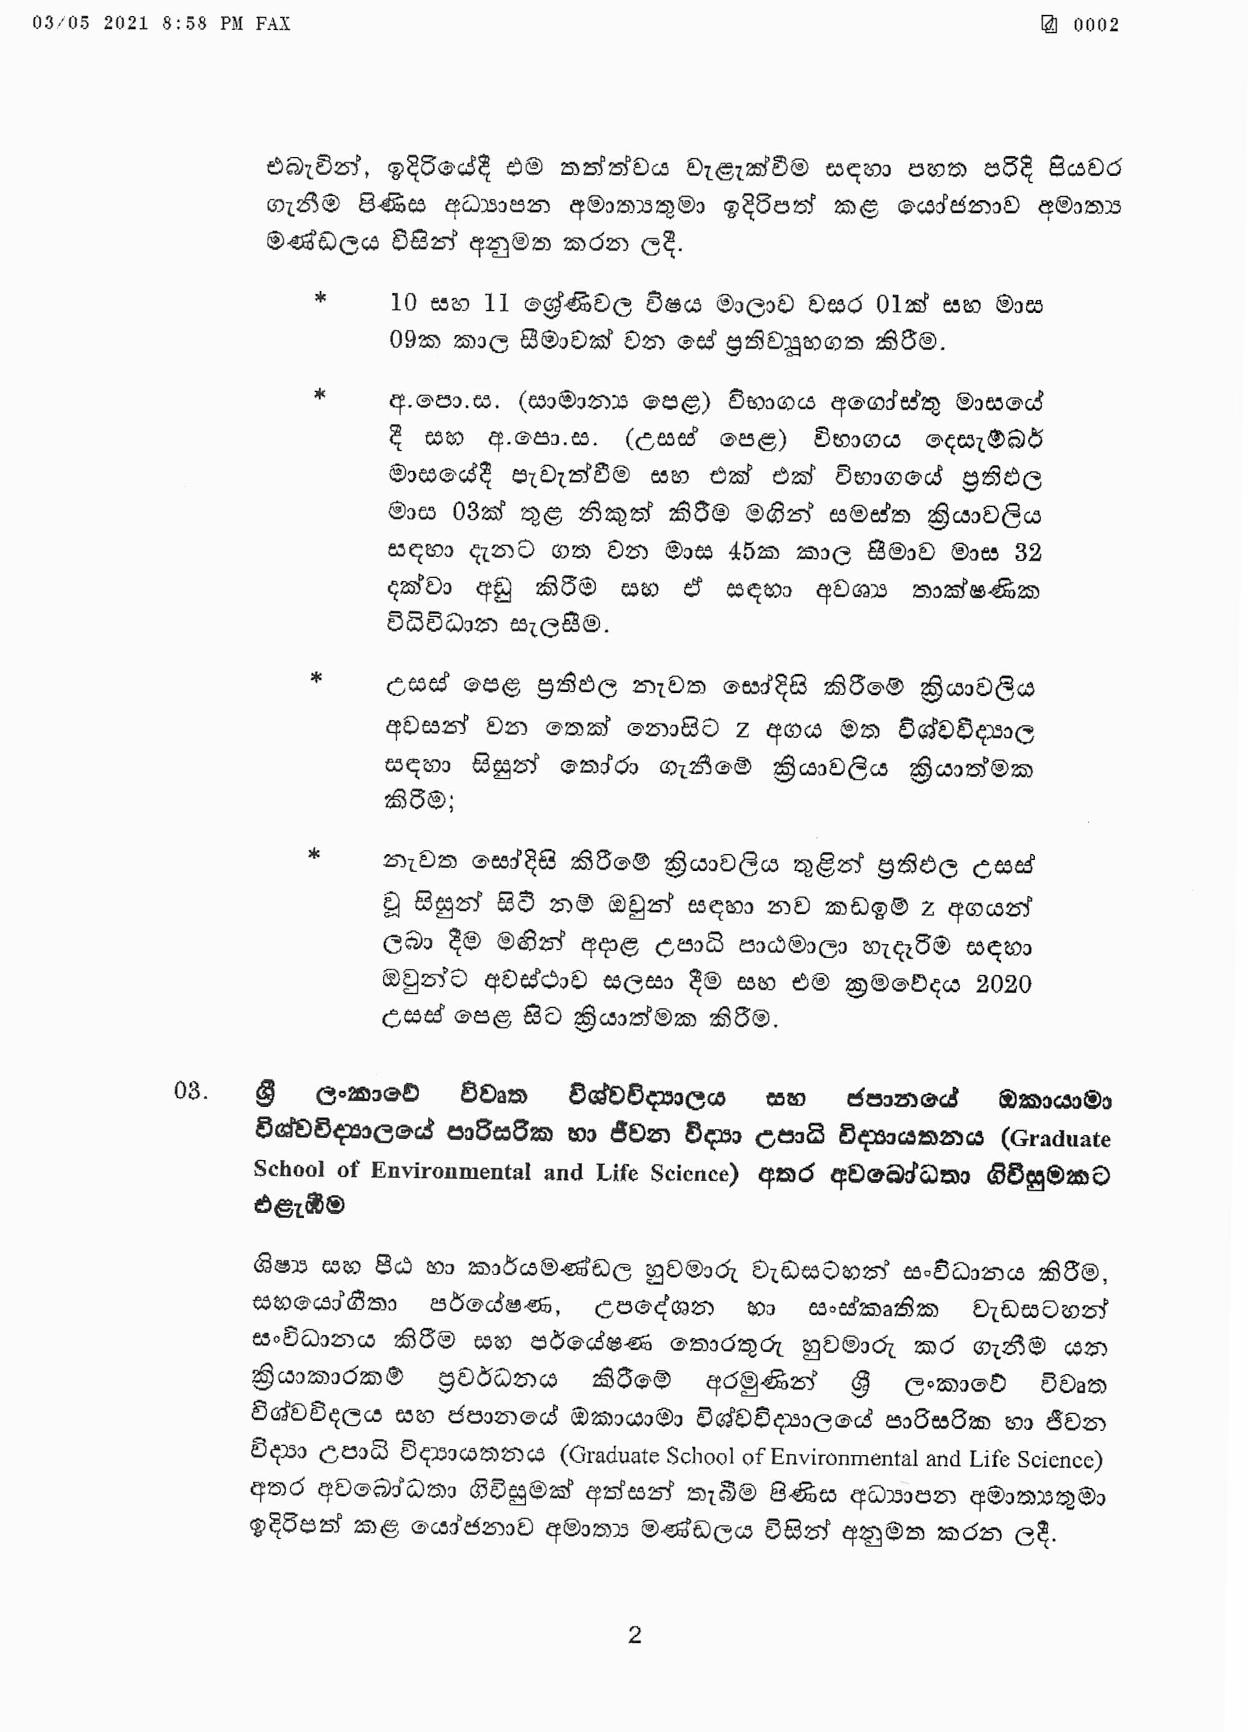 Cabinet Decision on 03.05.2021 page 002